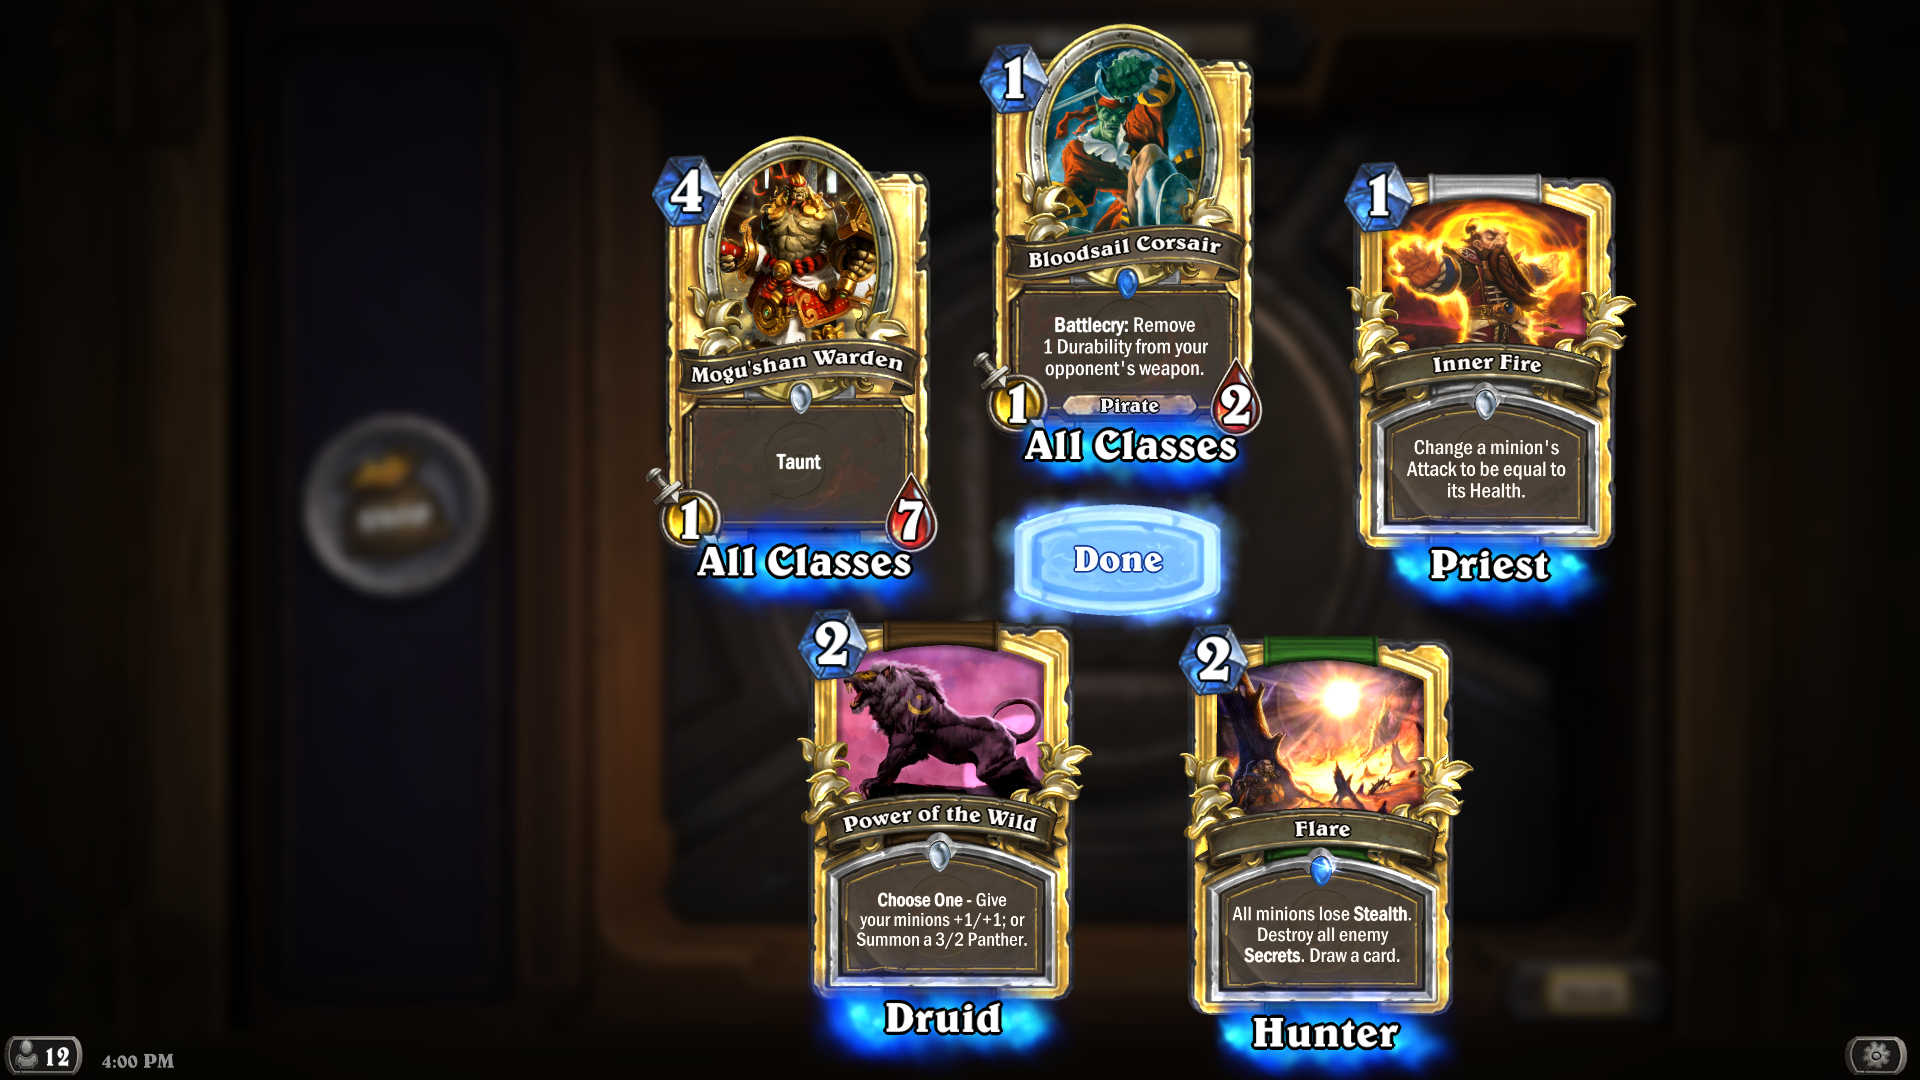 The All Golden Classic Pack - Now Available for Free to Twitch Prime